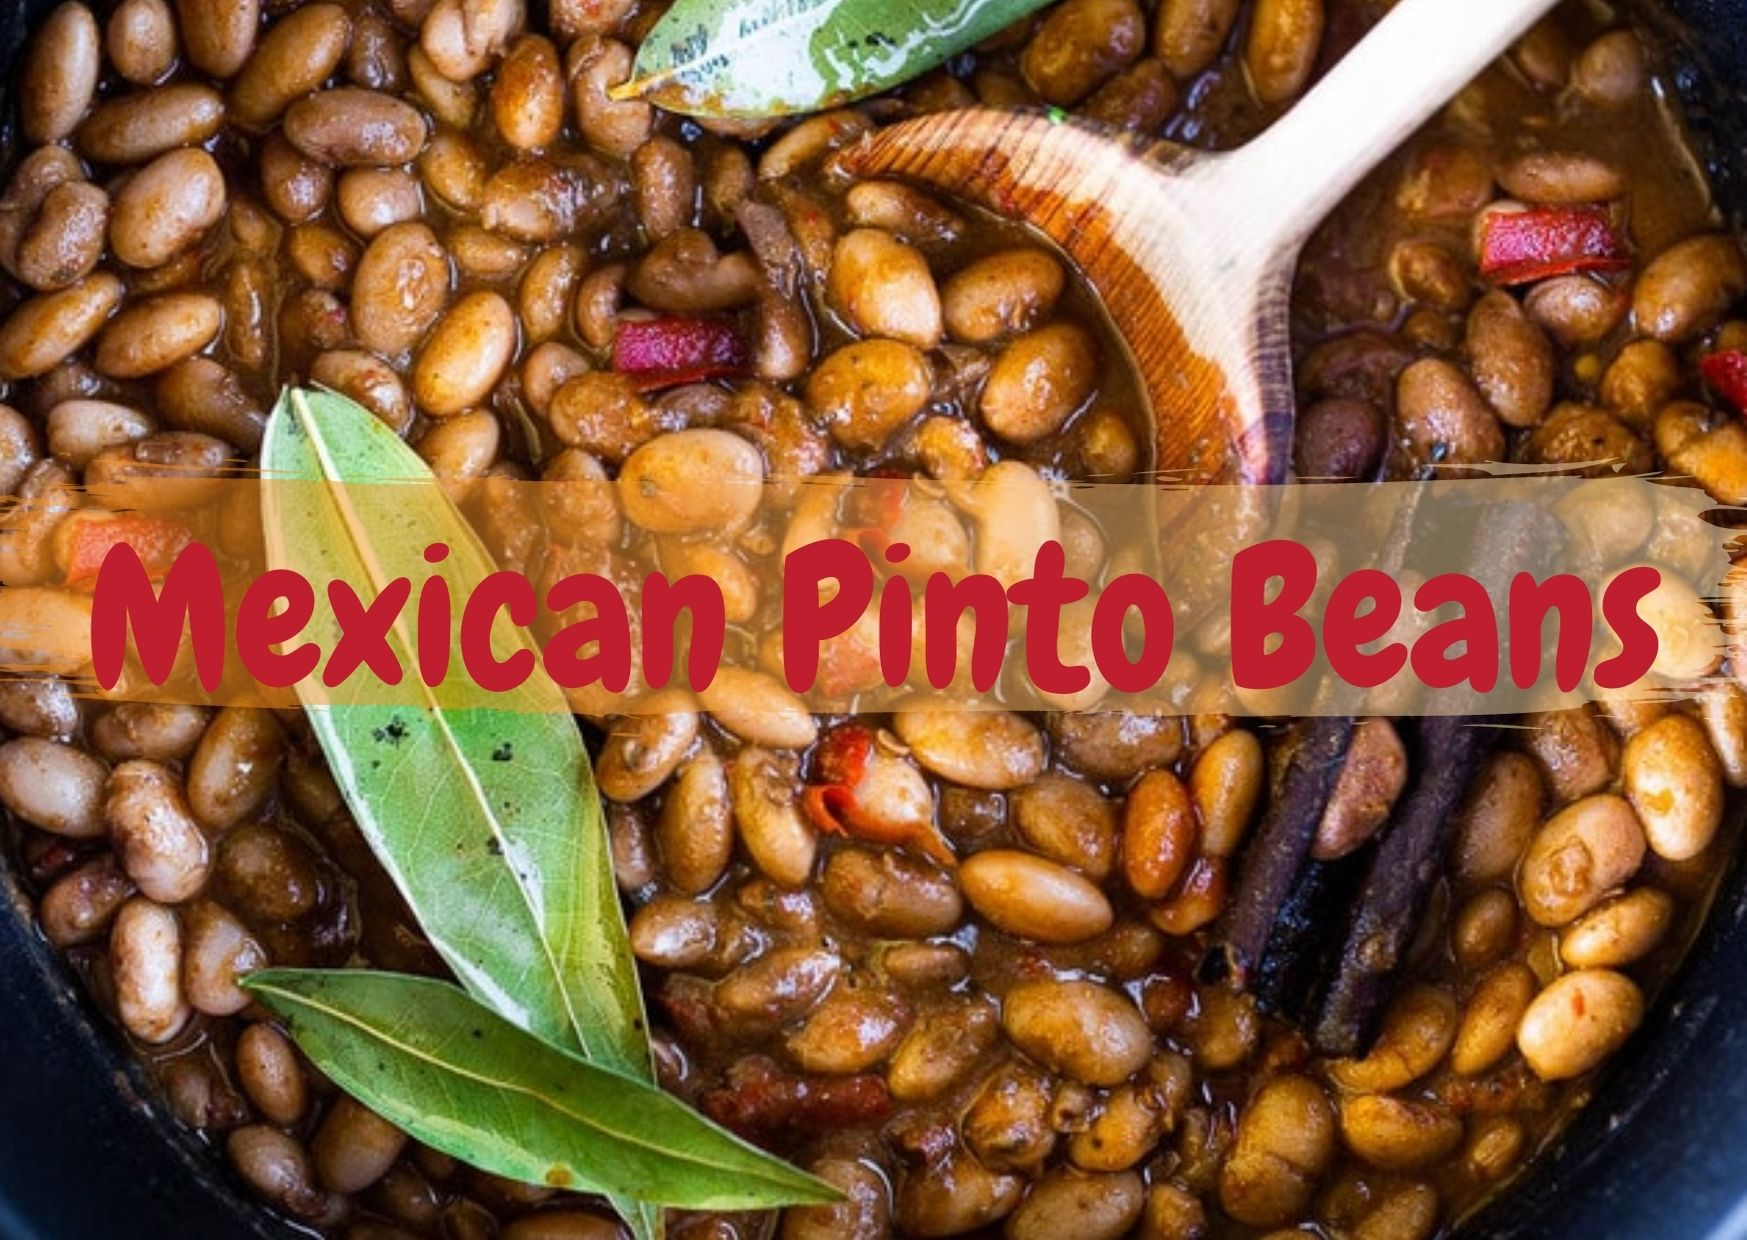 Mexican Pinto Beans2